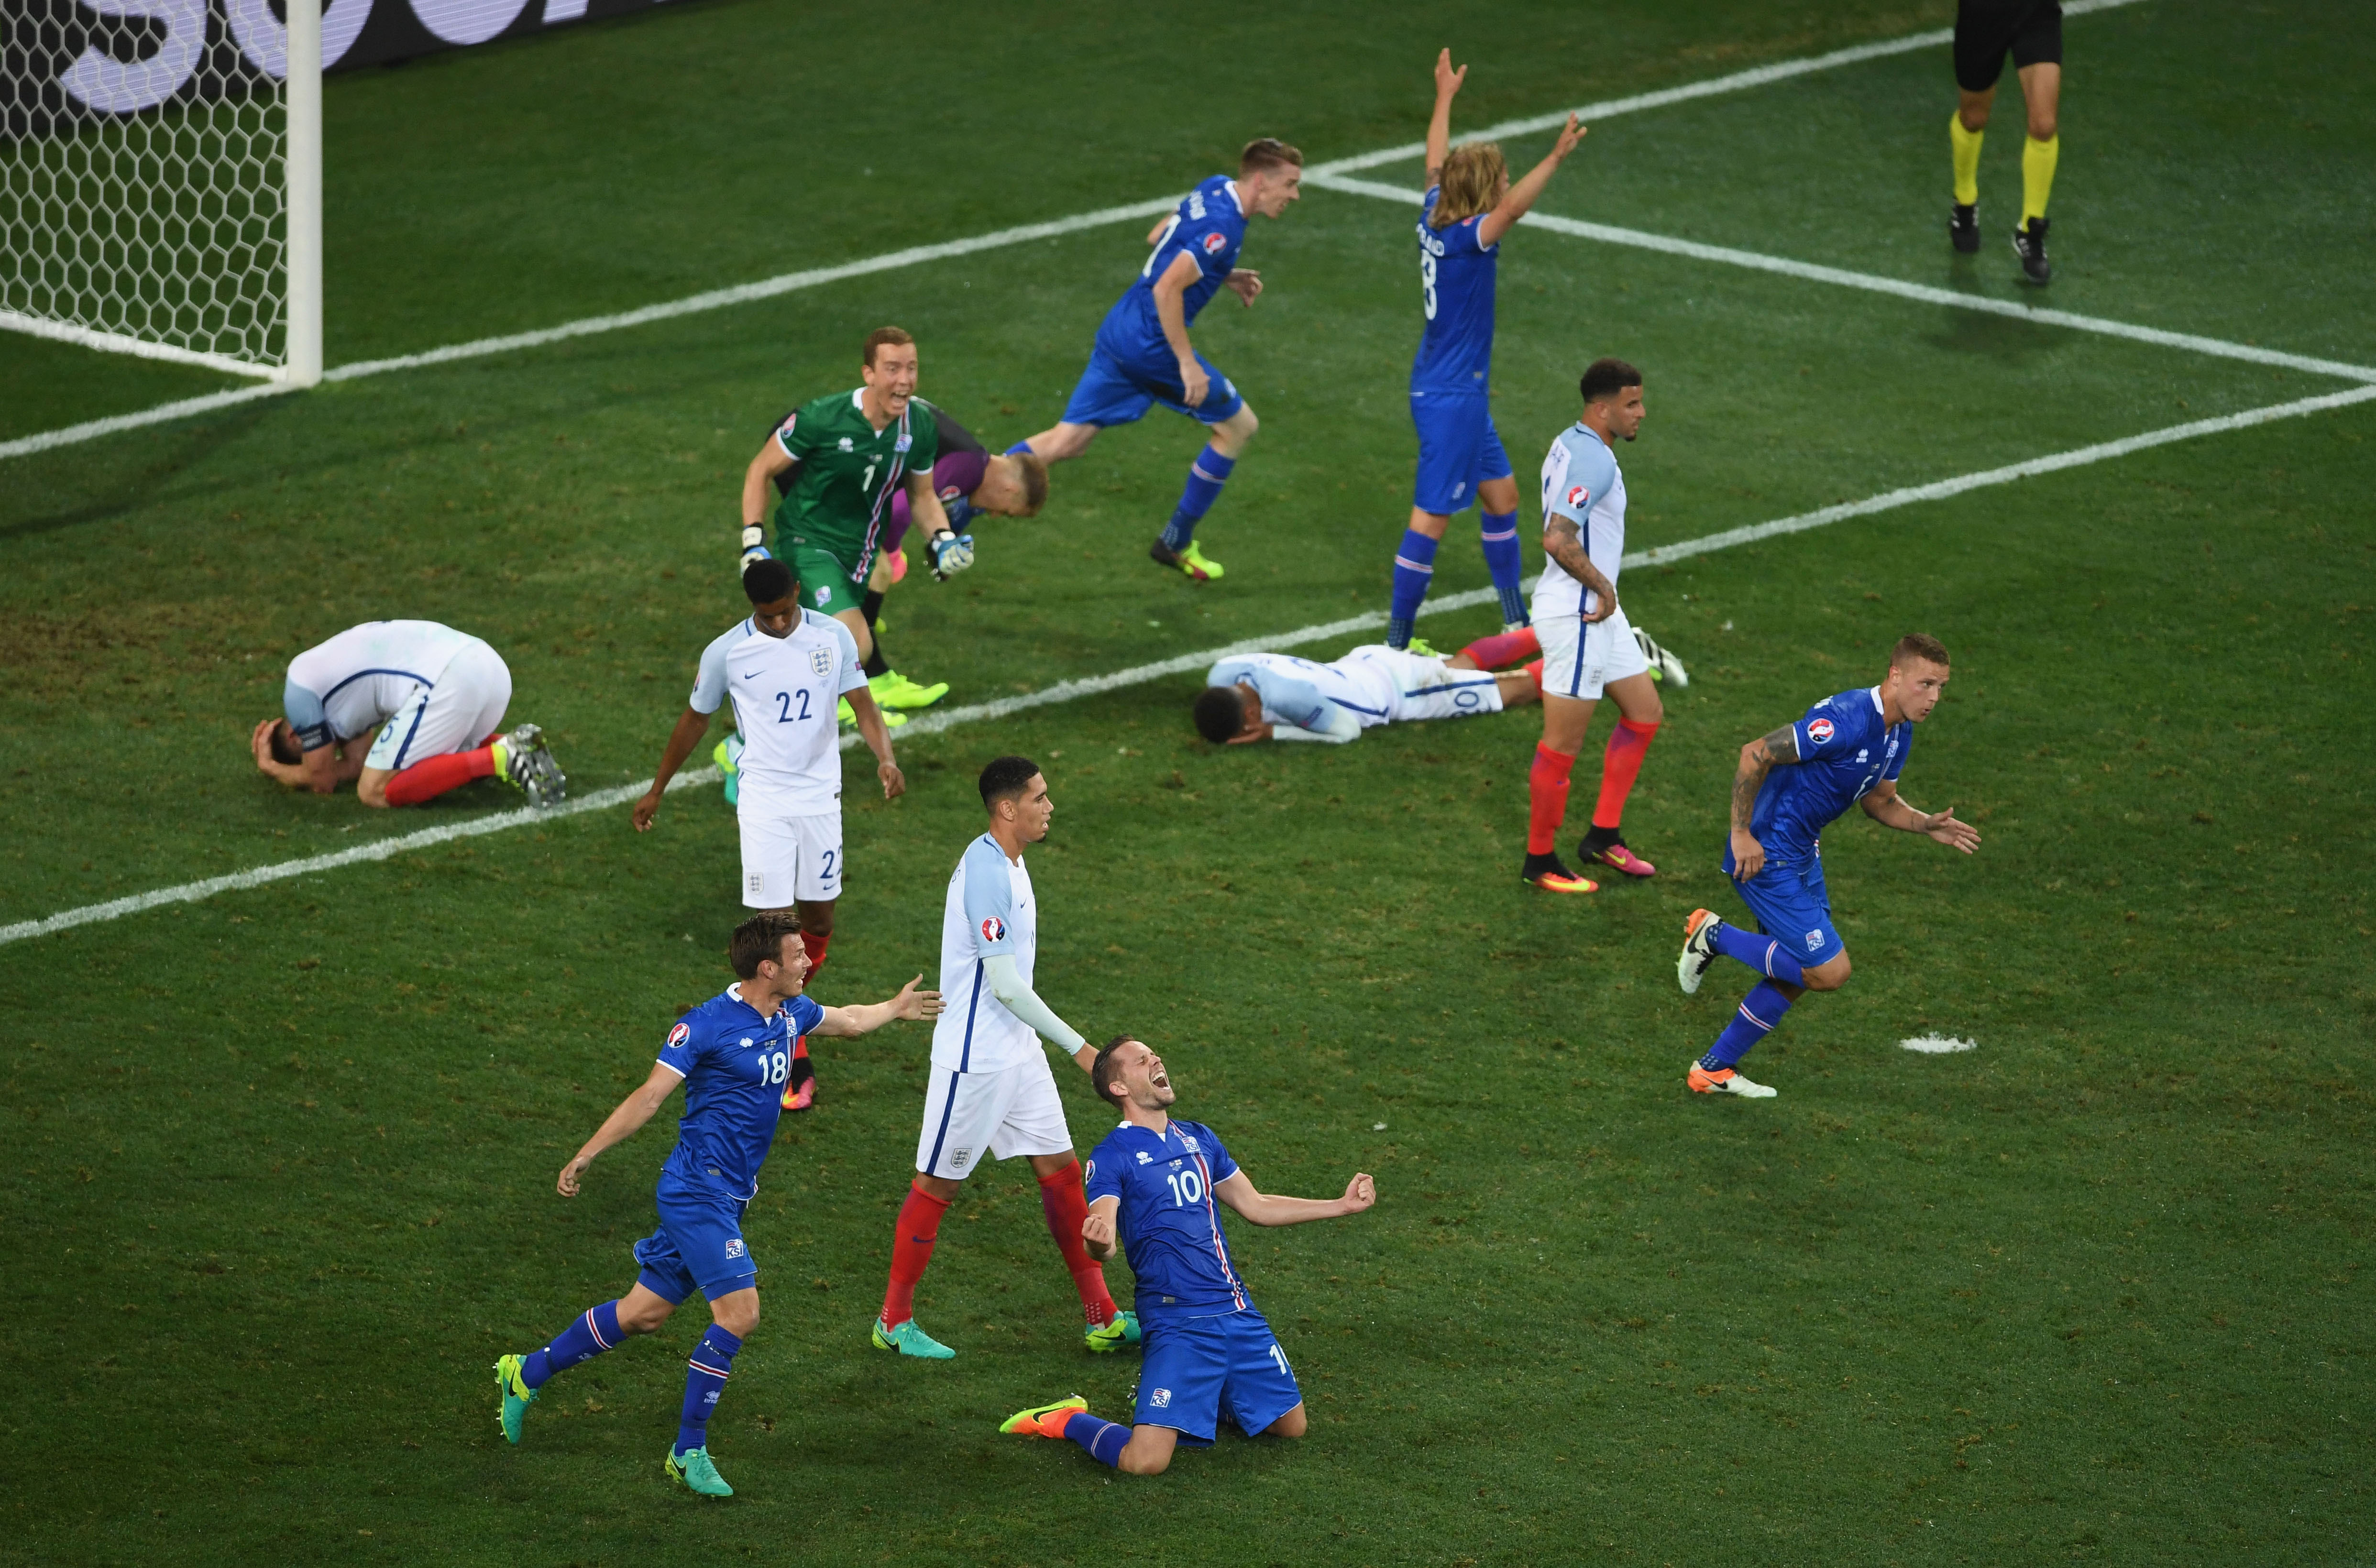 NICE, FRANCE - JUNE 27: (EDITORS NOTE: Retransmission of #543367594 with alternate crop.) Iceland players celebrate while England players show dejection after the UEFA EURO 2016 round of 16 match between England and Iceland at Allianz Riviera Stadium on June 27, 2016 in Nice, France. (Photo by Laurence Griffiths/Getty Images)